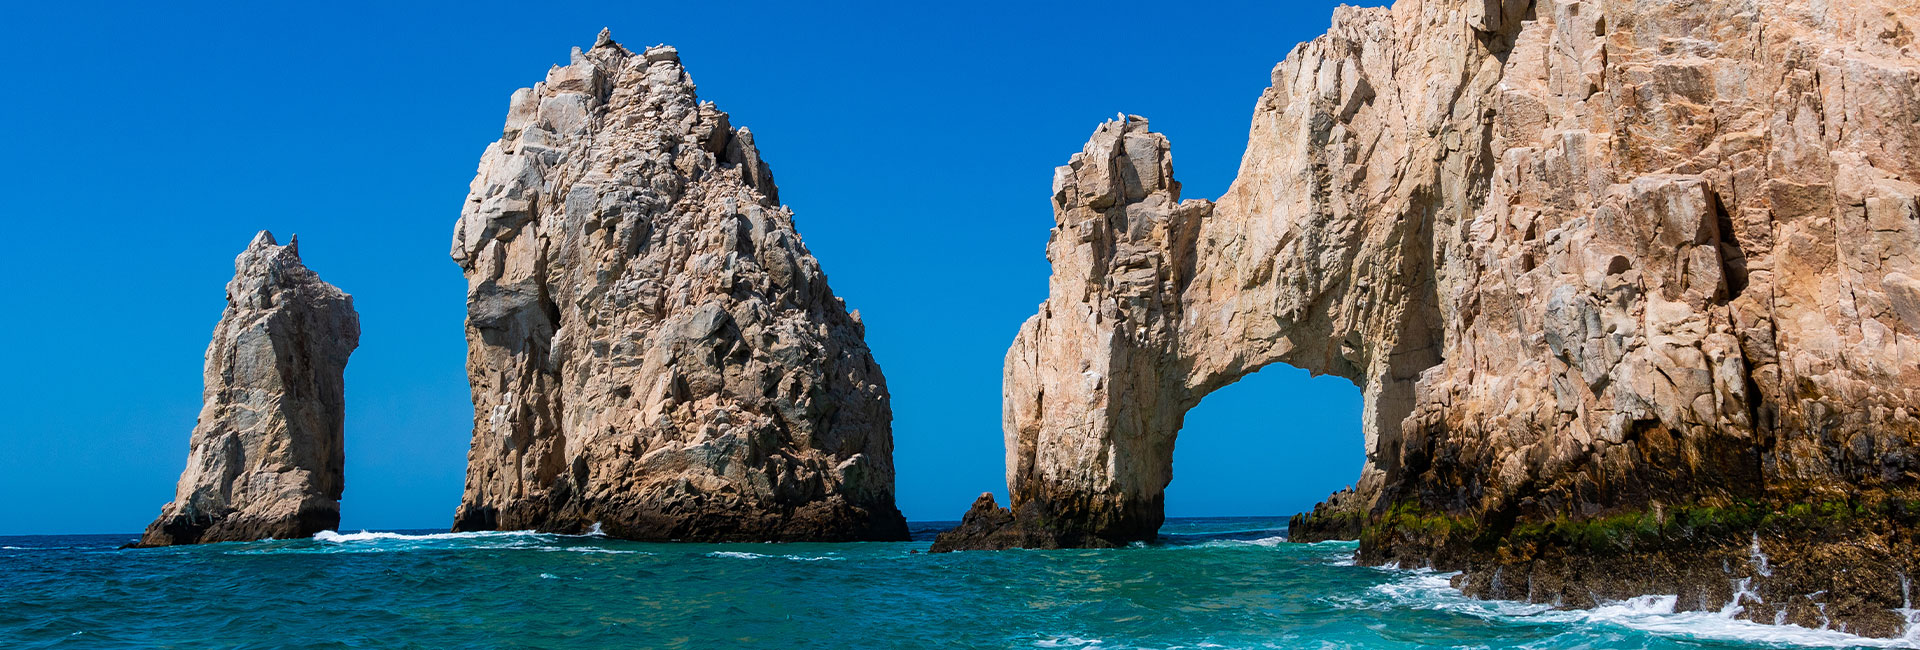 The Arch Of Los Cabos Mexico